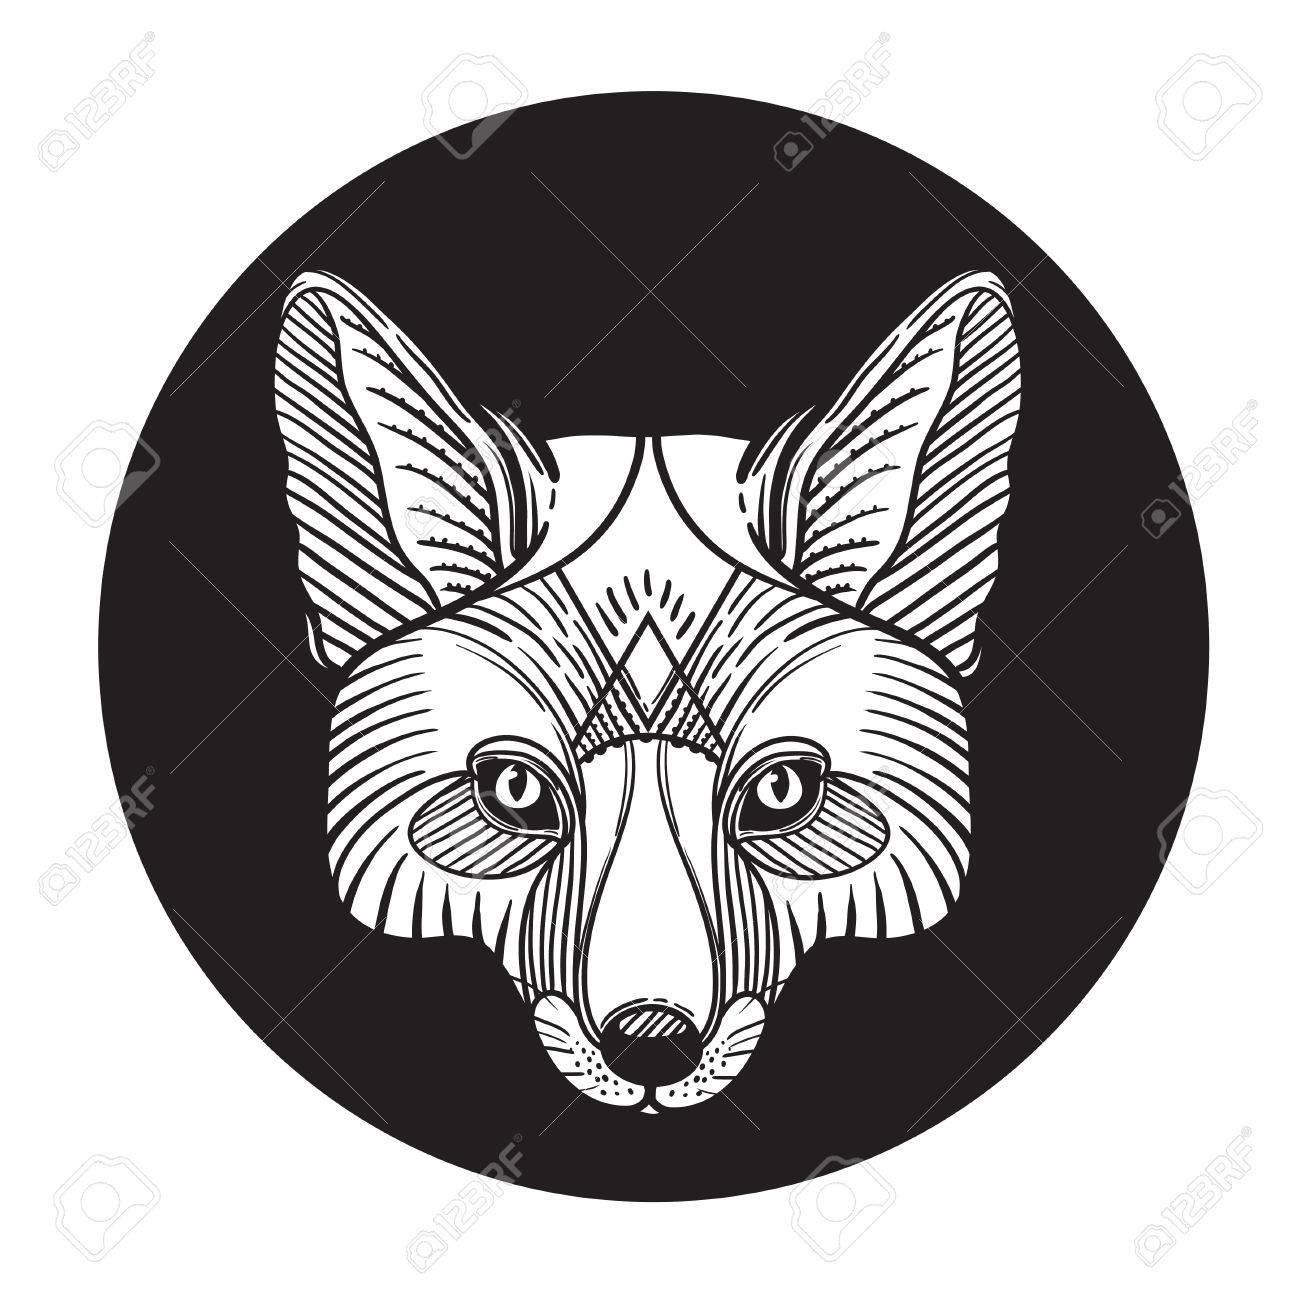 Animal Fox Head Print For Adult Anti Stress Coloring Page Ethnic Patterned Ornate Hand Drawn